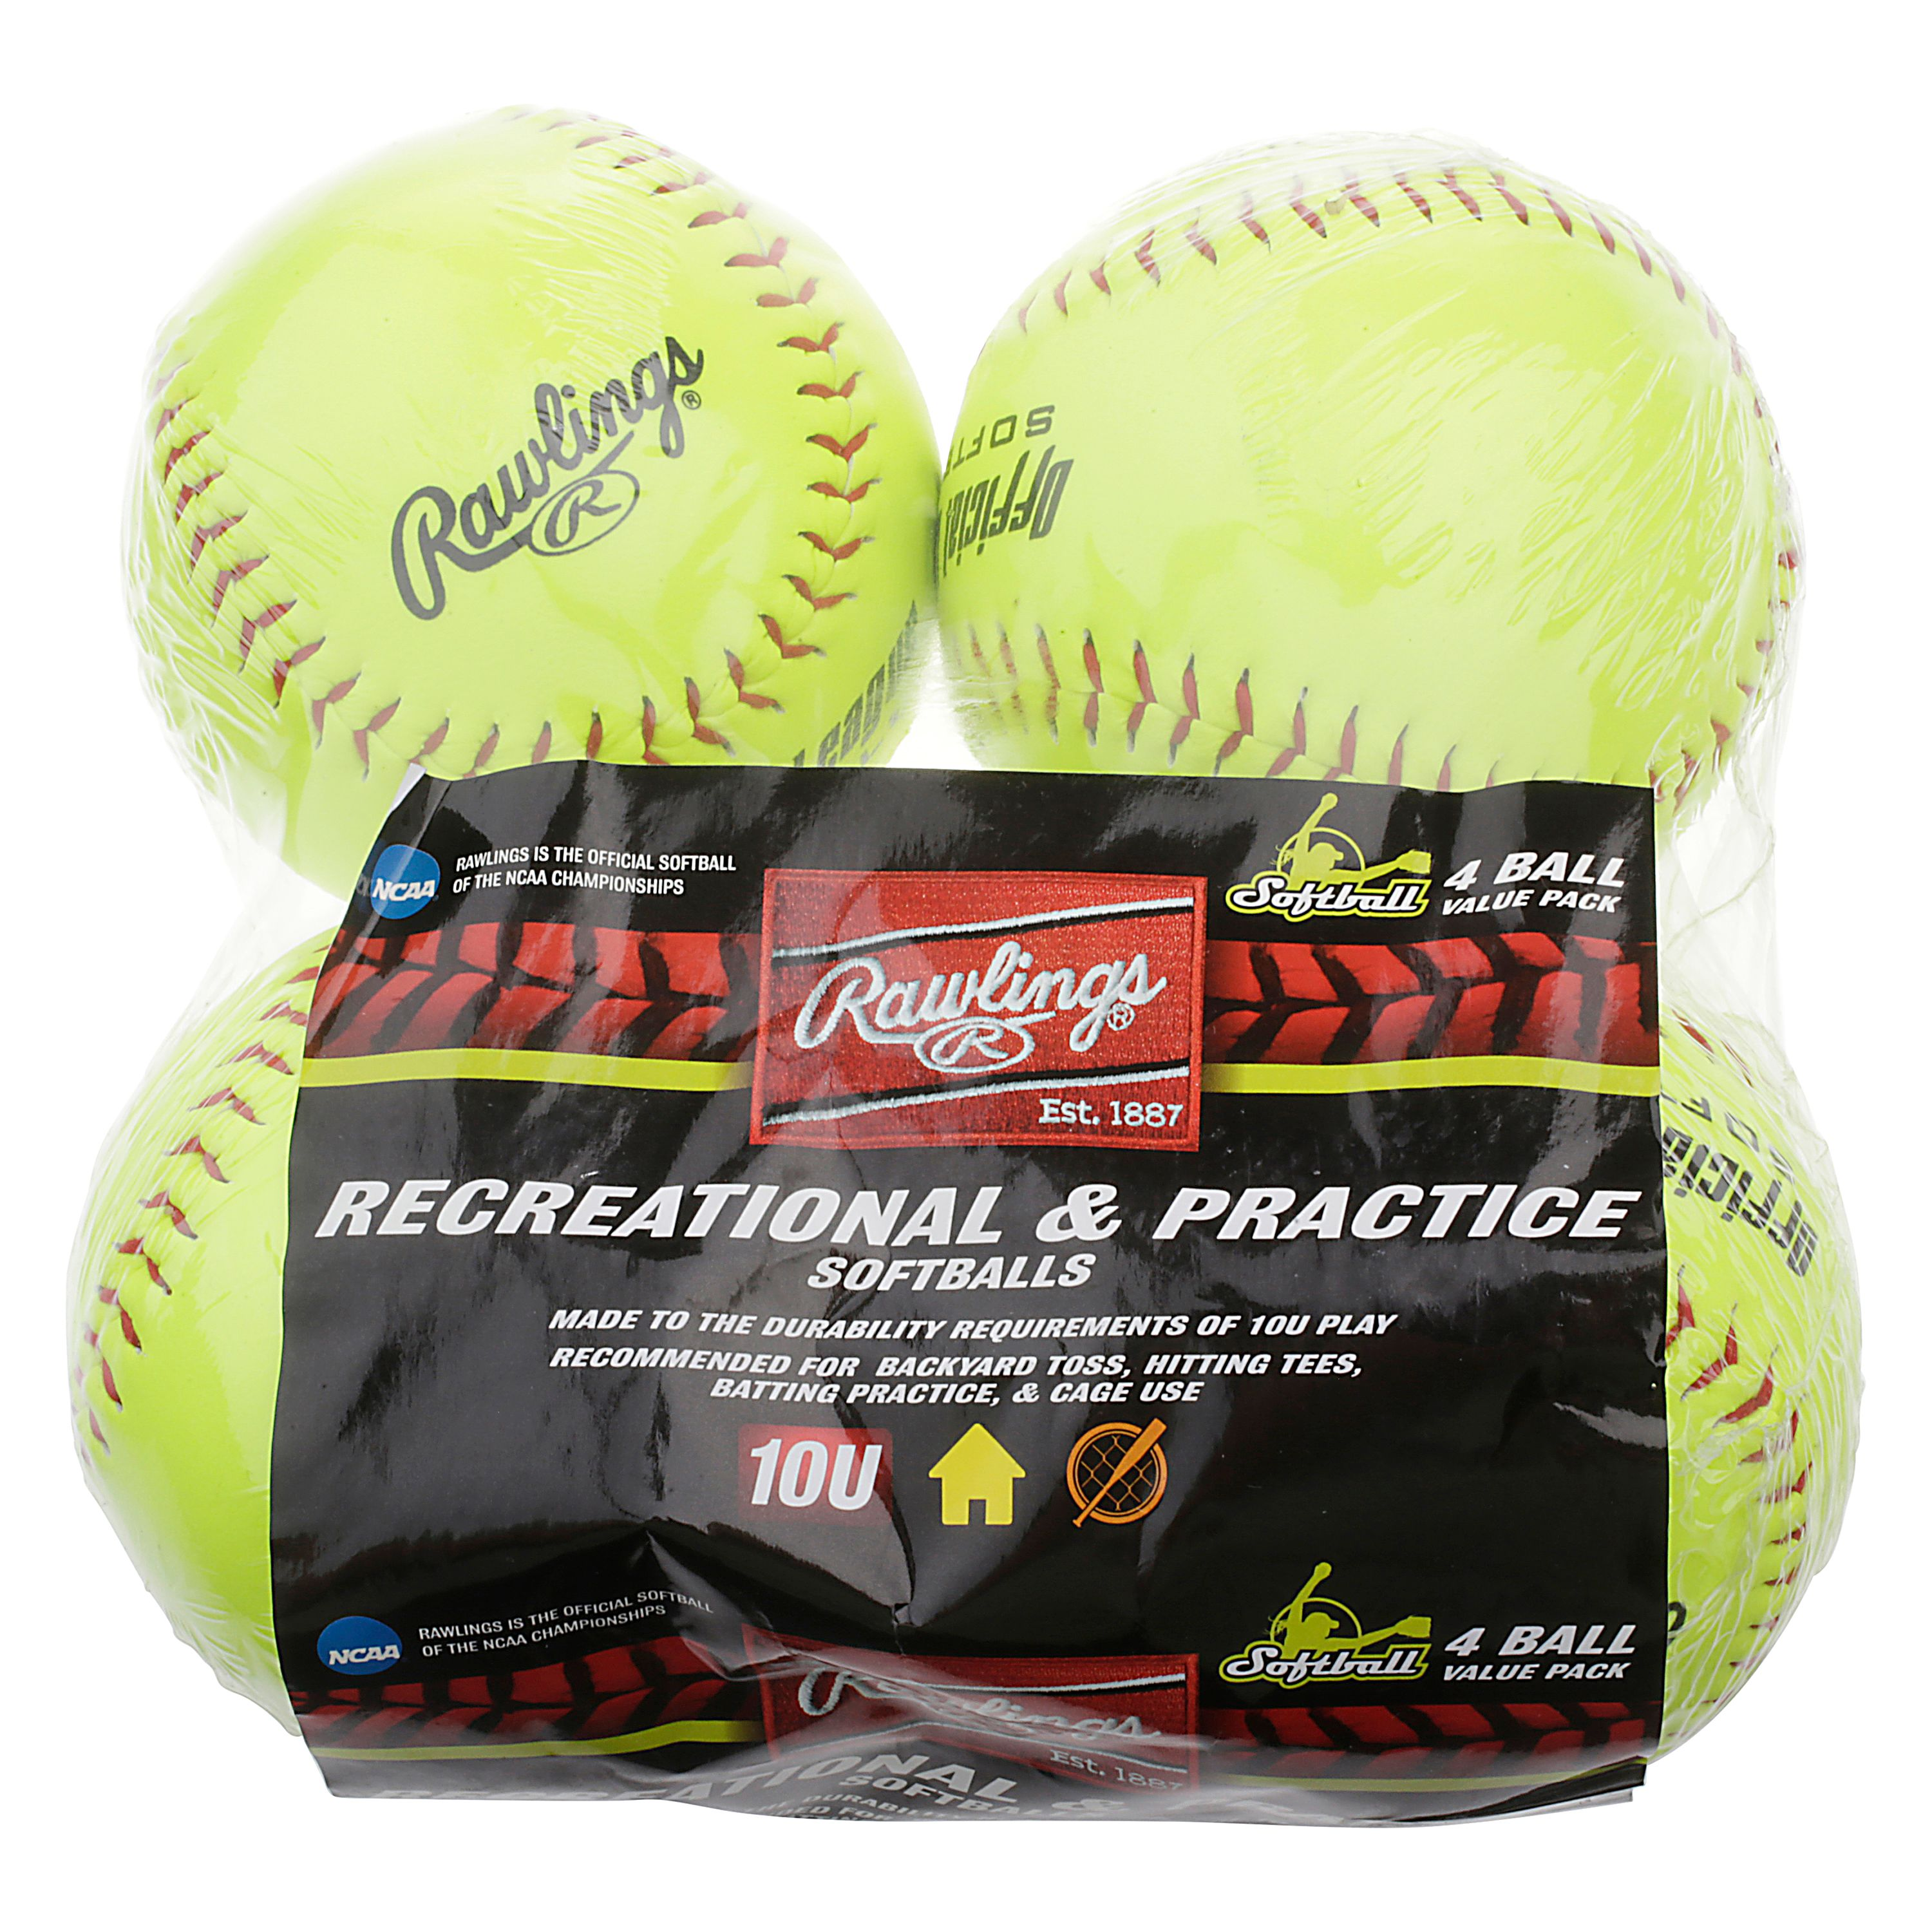 Rawlings Recreational and Practice Softballs, 4 Pack